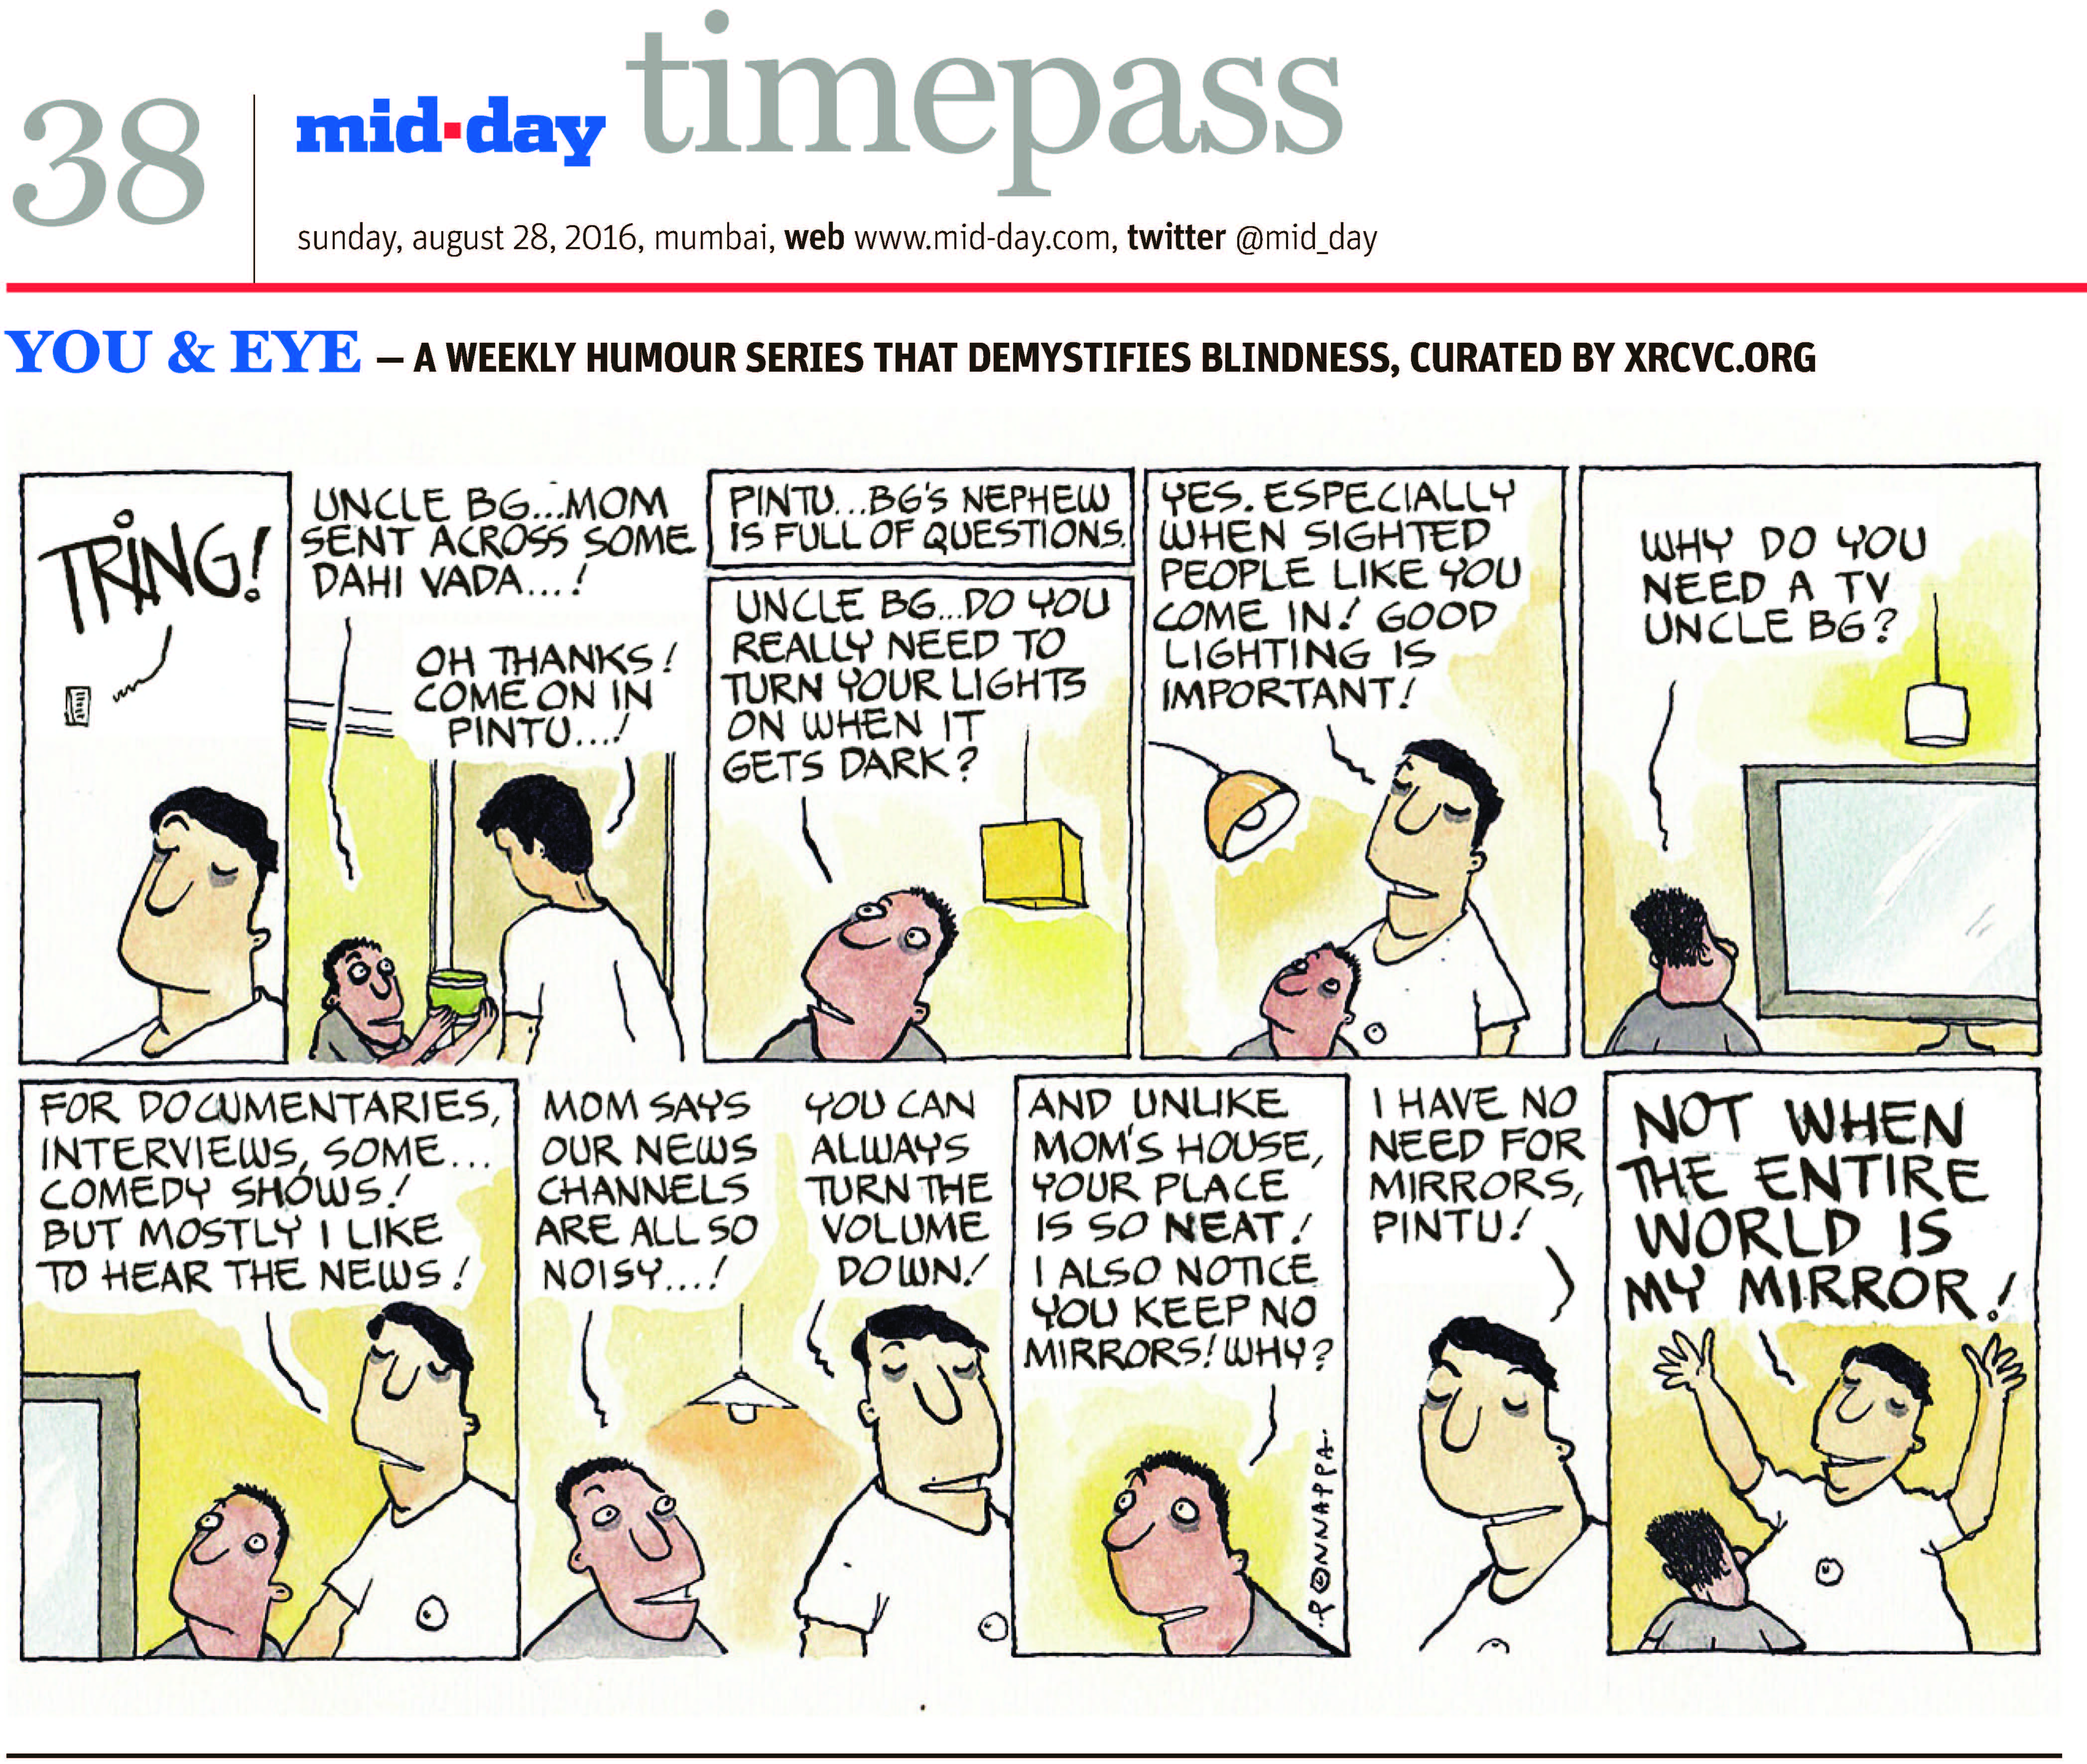 "Page 38 mid-day timepass, sunday, aug 28, 2016, mumbai, web: www.mid-day.com, twitter @mid_day YOU & EYE – A WEEKLY HUMOUR SERIES THAT DEMYSTIFIES BLINDNESS, CURATED BY XRCVC.ORG Image description: A cartoon strip with 10 frames… Frame 1: (A close-up of the visually impaired man – BG; the word ""TRING!"" is seen near a bell on the wall) Frame 2: (A sighted boy offering a bowl to BG) Boy: Uncle BG… Mom sent across some Dahi Vada…! BG: Oh Thanks! Come on in Pintu…! Frame 3: (A close-up of Pintu looking upwards in wonder; a ceiling lamp is seen in the background) Pintu… BG's nephew is full of questions. Pintu: Uncle BG… do you really need to turn your lights on when it gets dark? Frame 4: (BG and Pintu stand looking towards another wall lamp) BG: Yes. Especially when sighted people like you come in! Good lighting is important! Frame 5: (Pintu is seen looking towards a large screen TV which has a ceiling lamp nearby) Pintu: Why do you need a TV, Uncle BG? Frame 6: (BG and Pintu stand looking towards the TV) BG: For documentaries, interviews, some… comedy shows! But mostly I like to hear the news! Frame 7: (Pintu smiling as he looks towards BG)